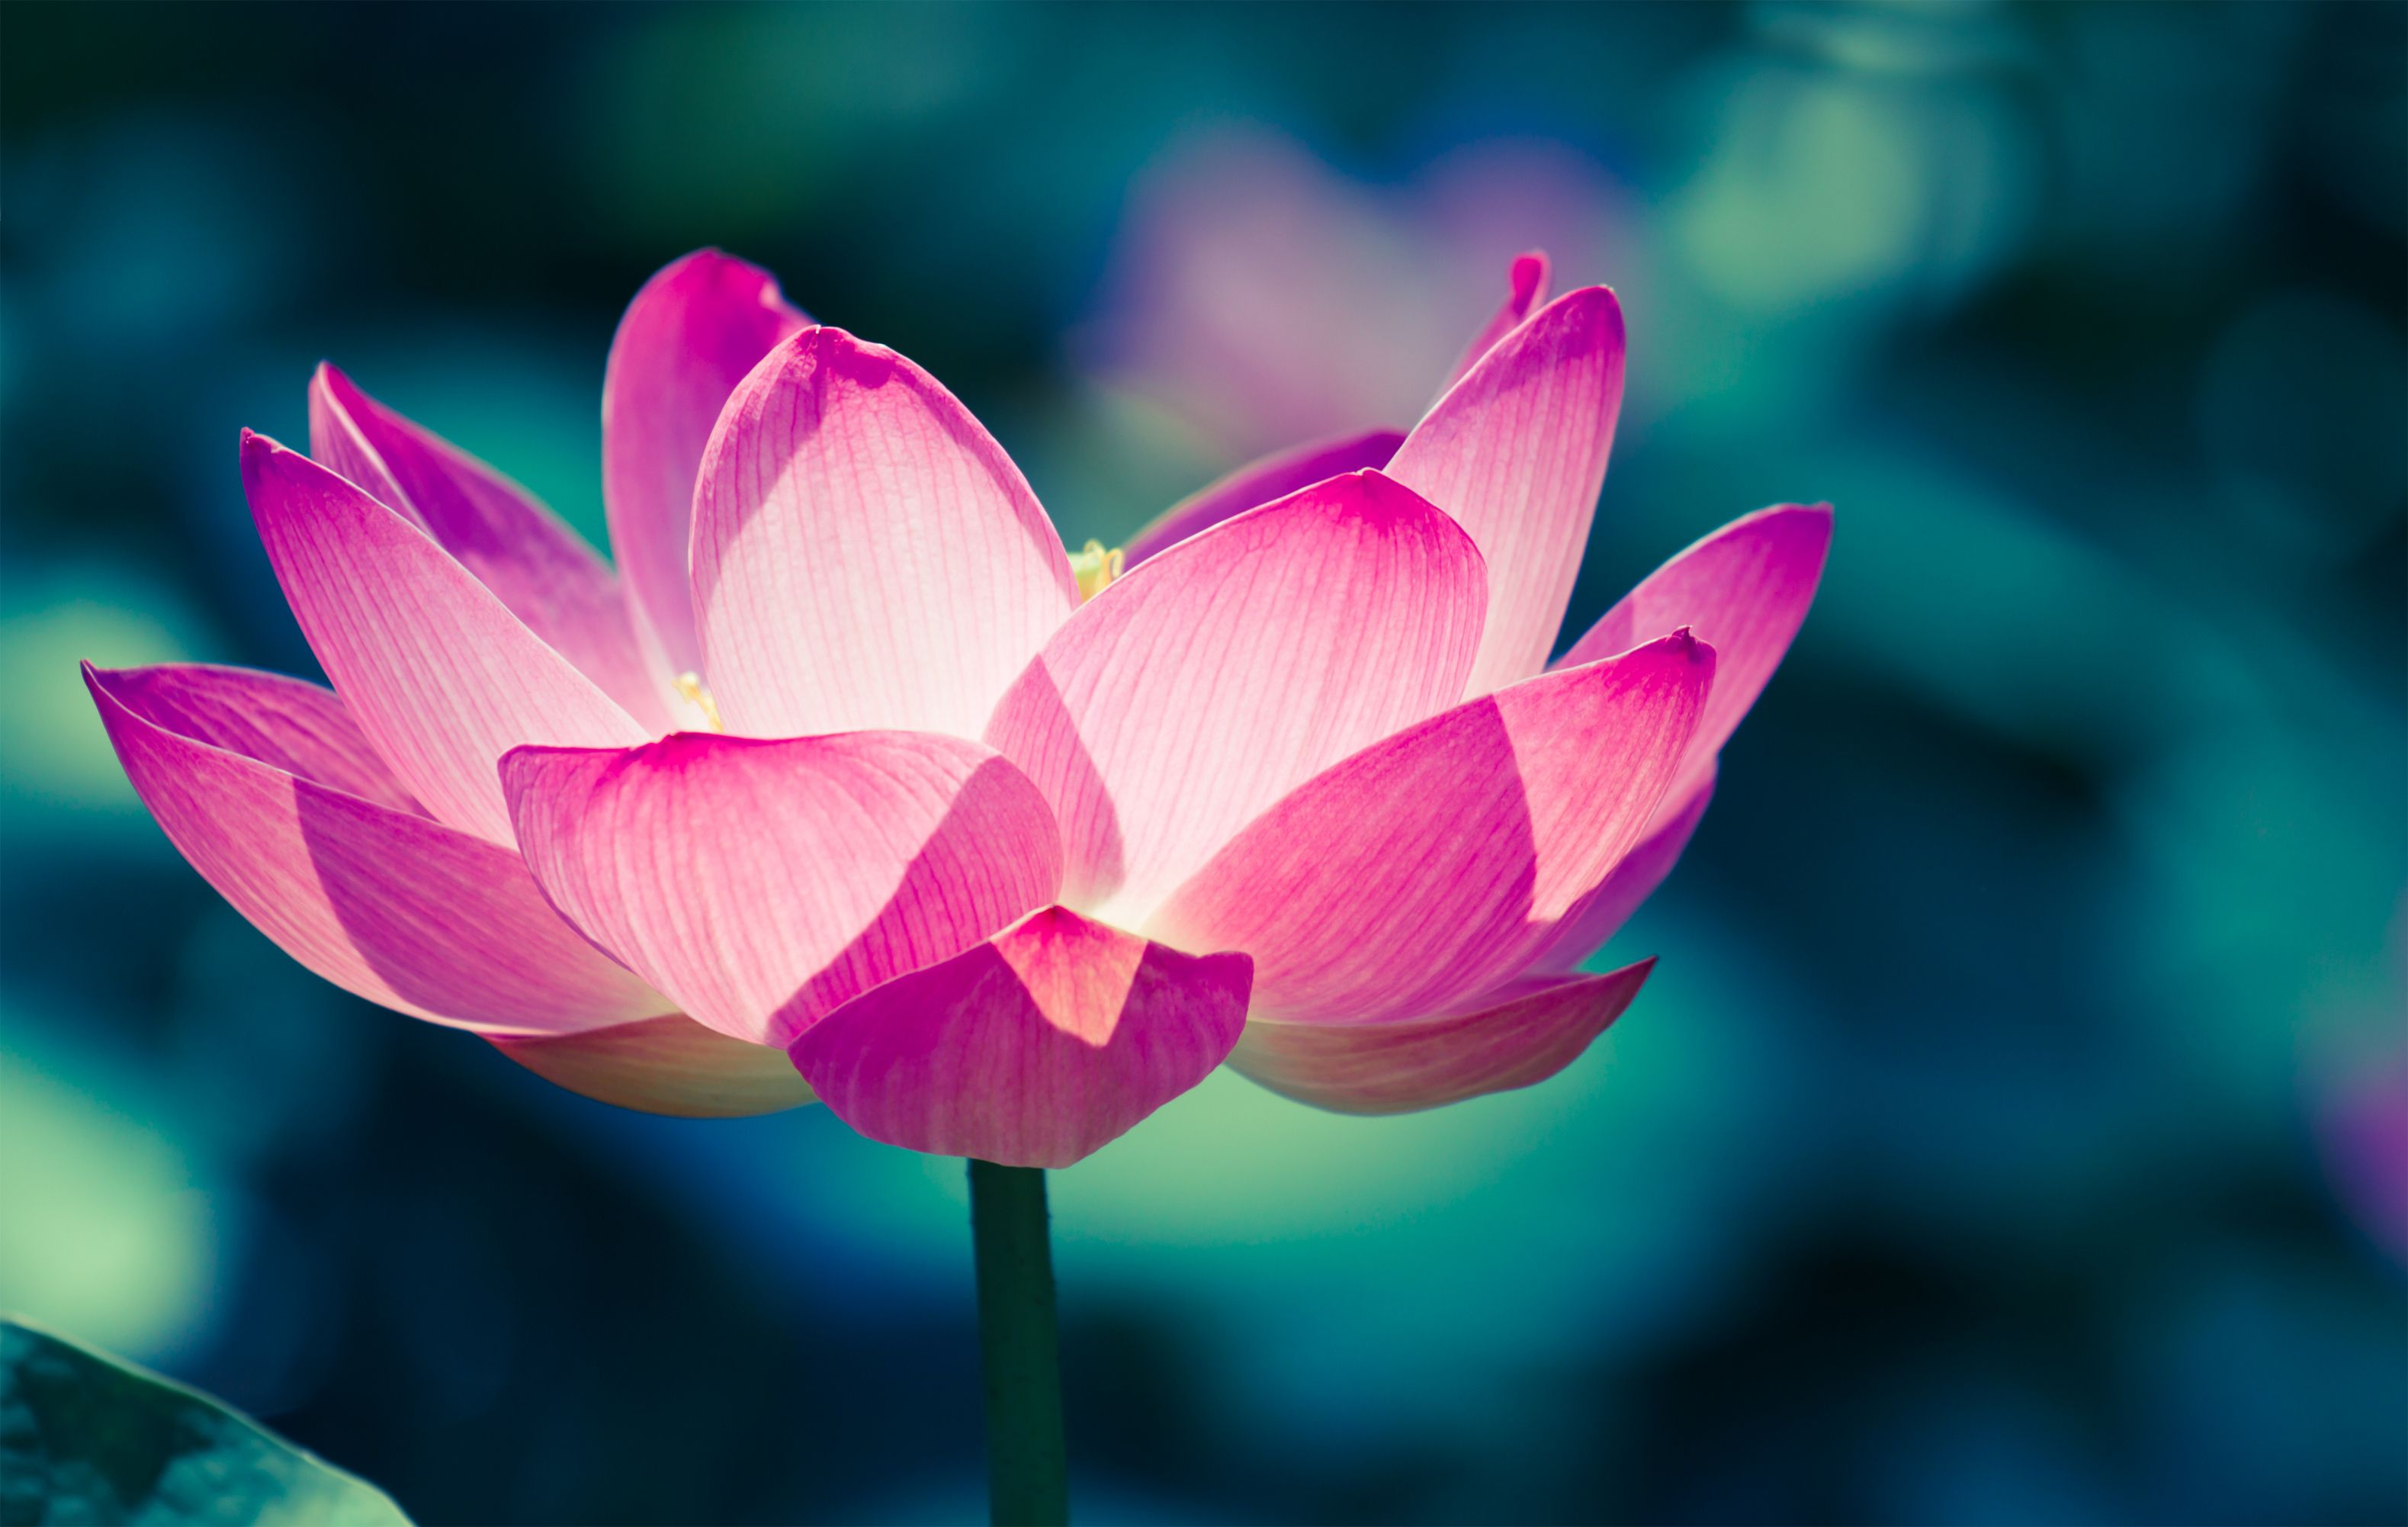 Lotus flower meaning what is the symbolism behind the lotus izmirmasajfo